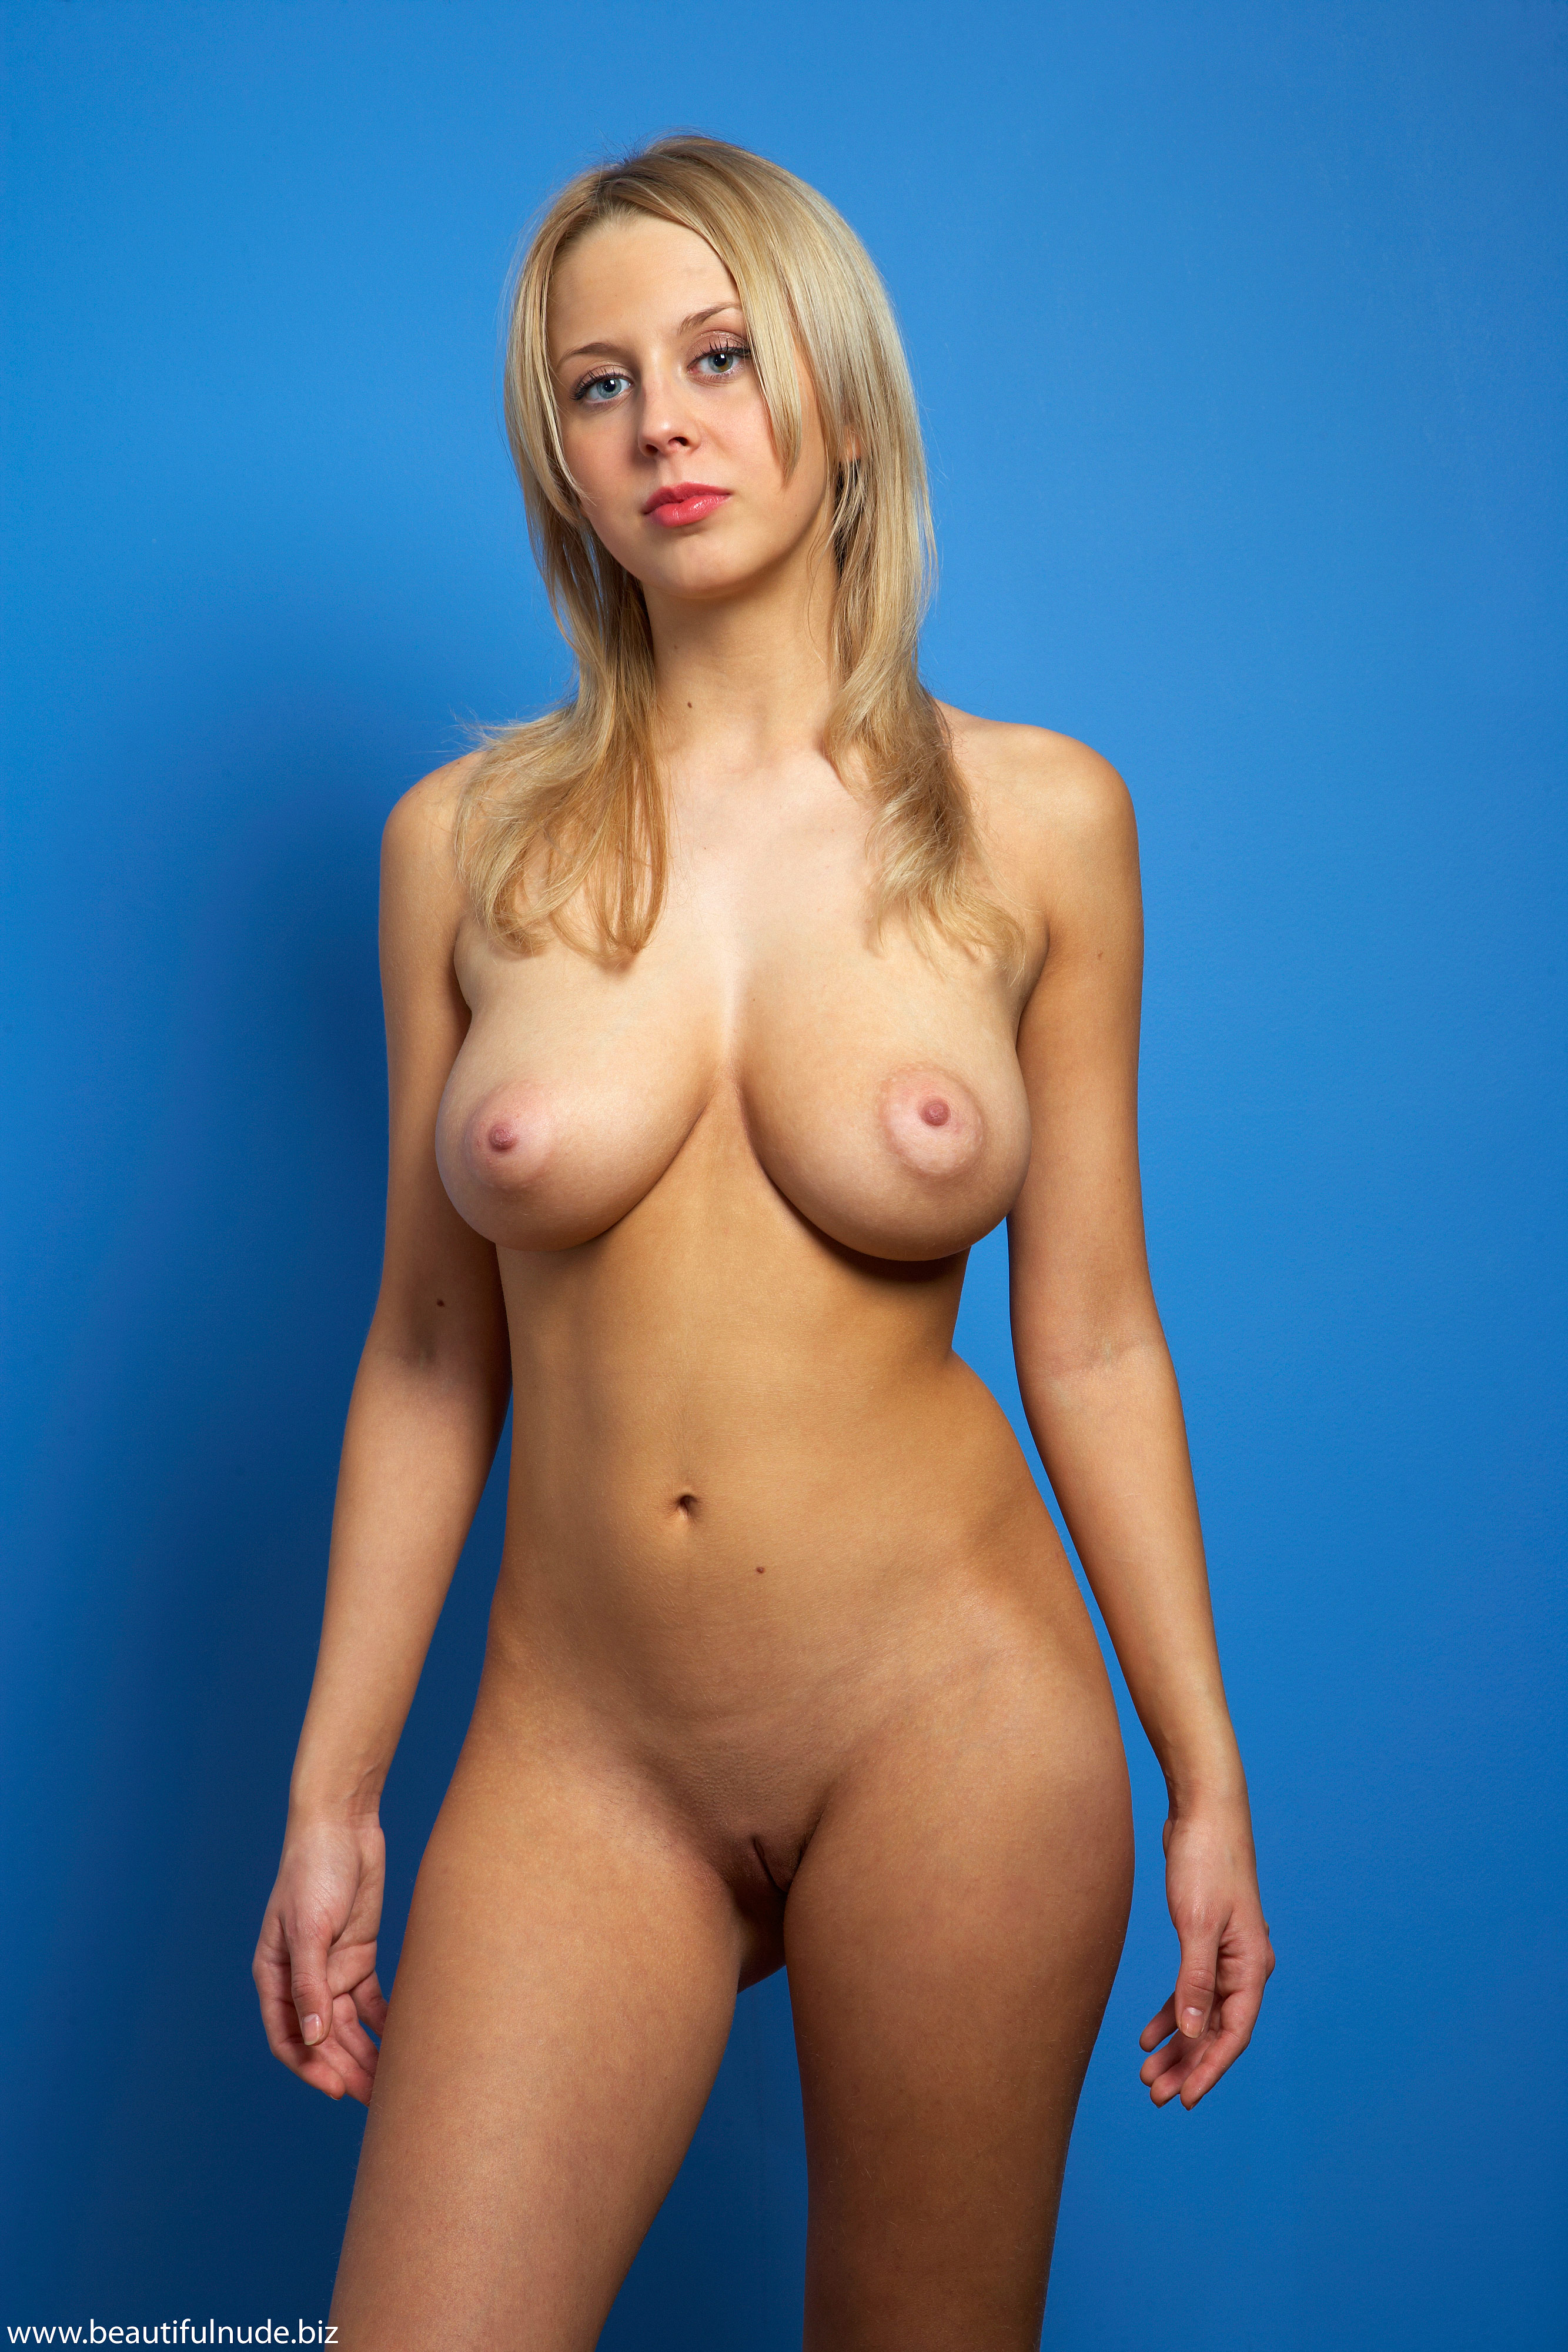 full nude girls immages